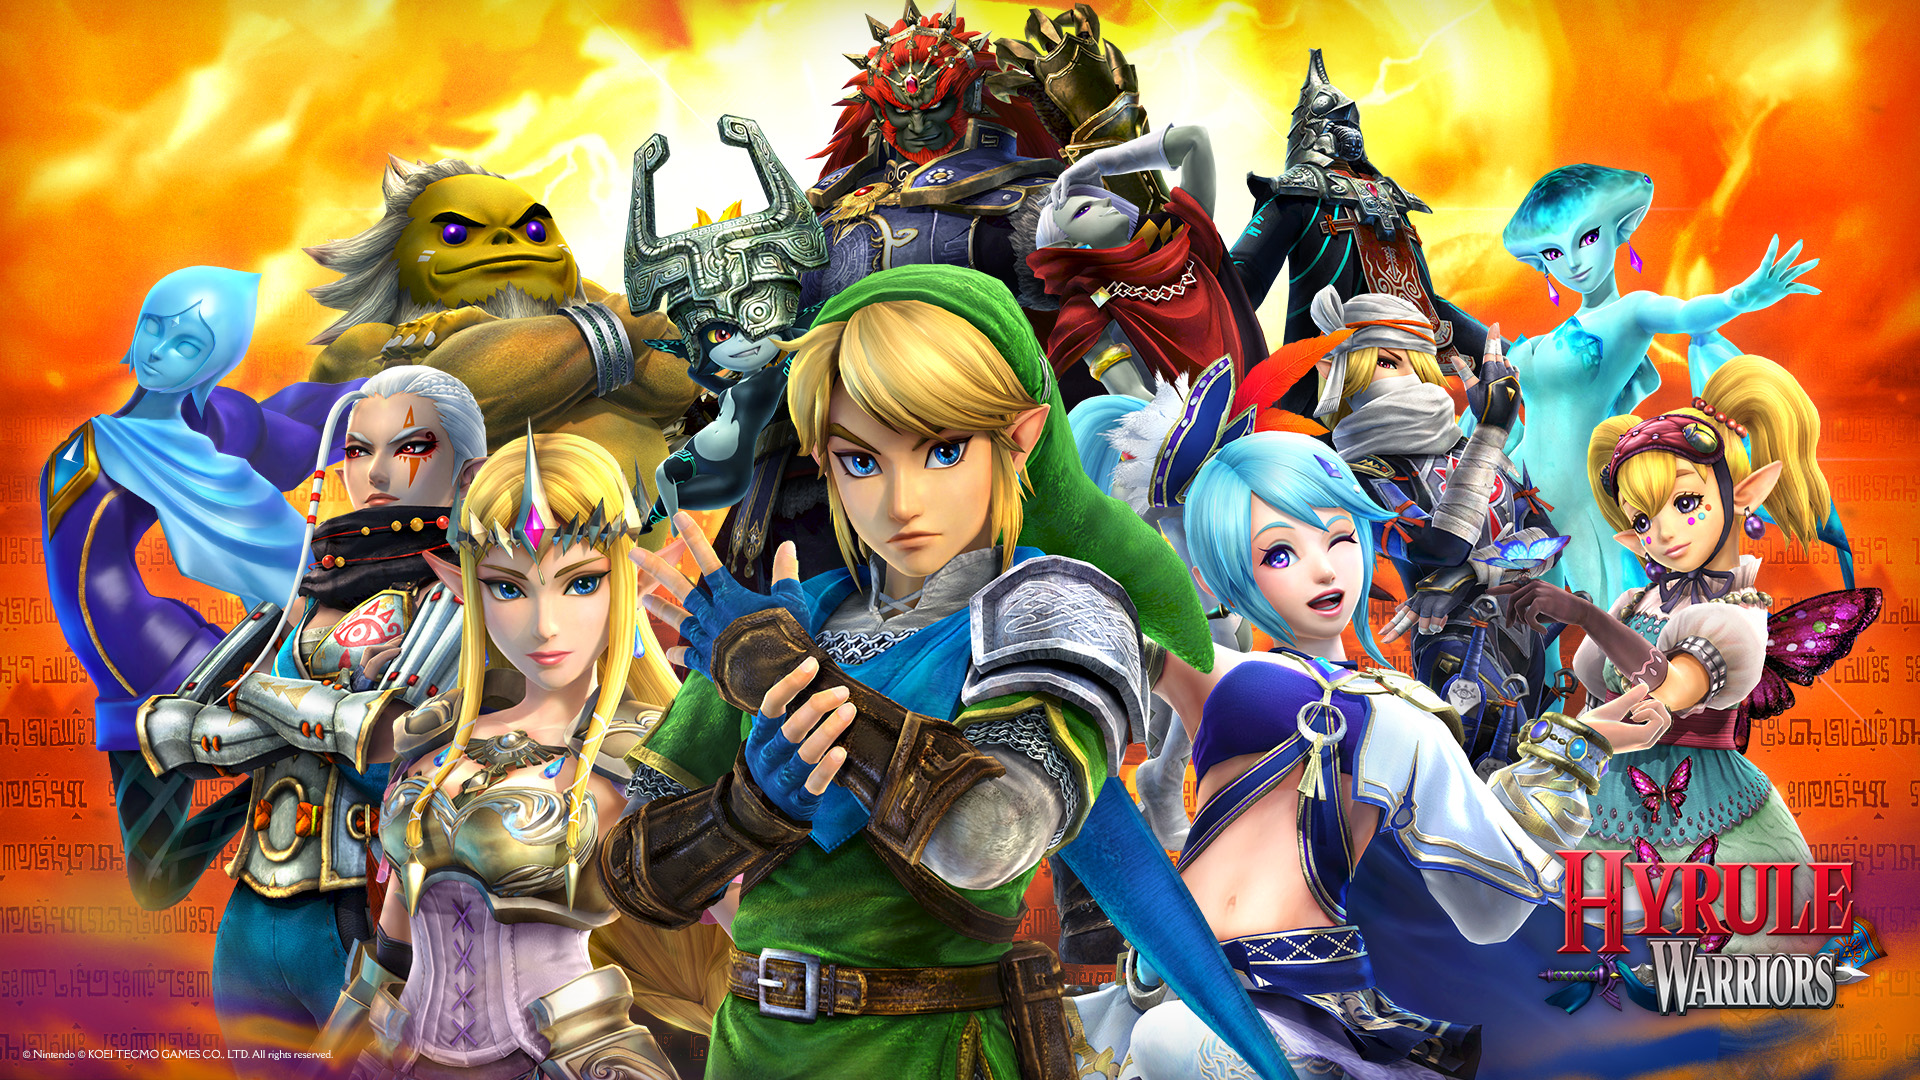 Modojo | Take a Look At the First Level of Hyrule Warriors Legends